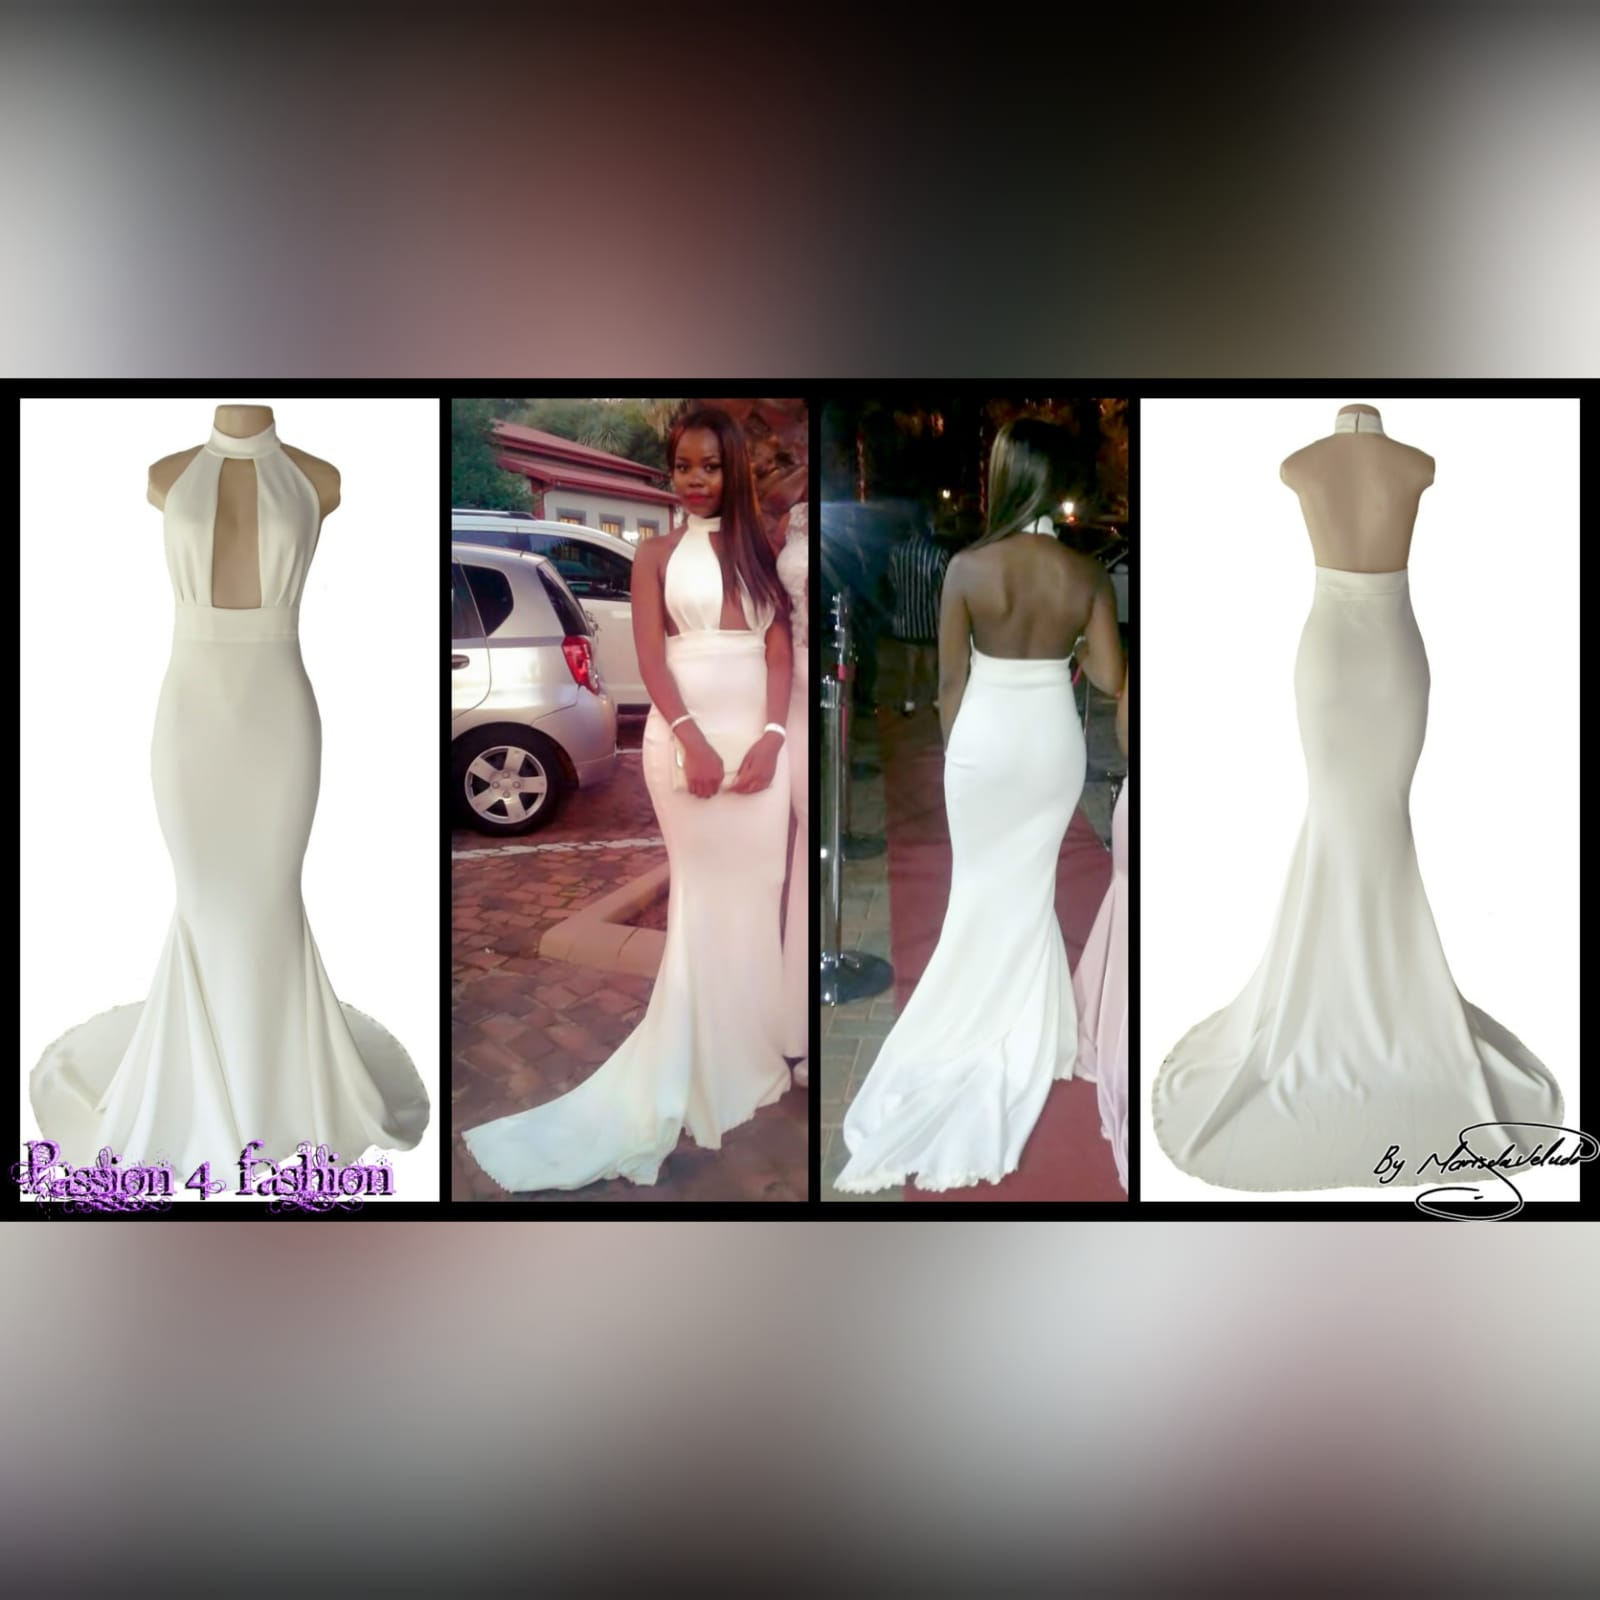 Plunging neckline ivory soft mermaid prom dress 2 ivory soft mermaid prom dress with a plunging and choker neckline with a naked back and a train